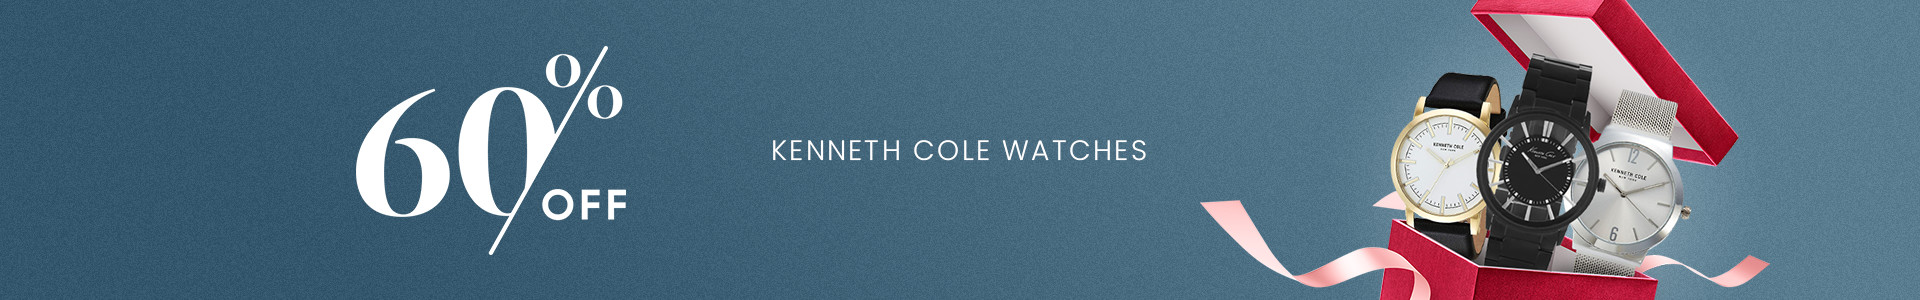 Kenneth Cole Specials